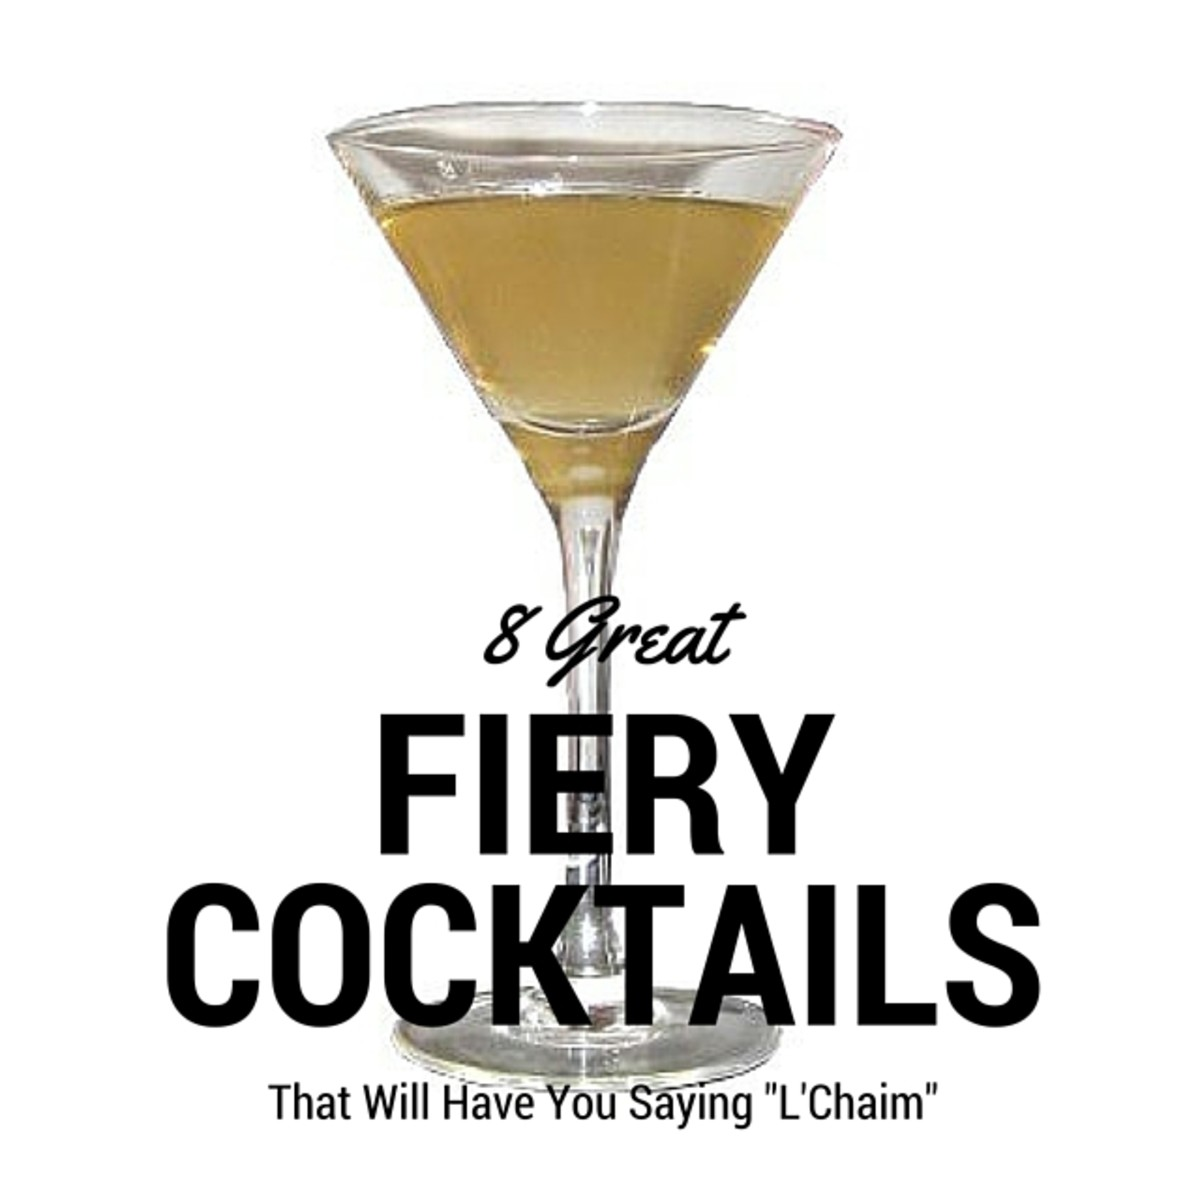 8 Great Fiery Cocktails That Will Have You Saying